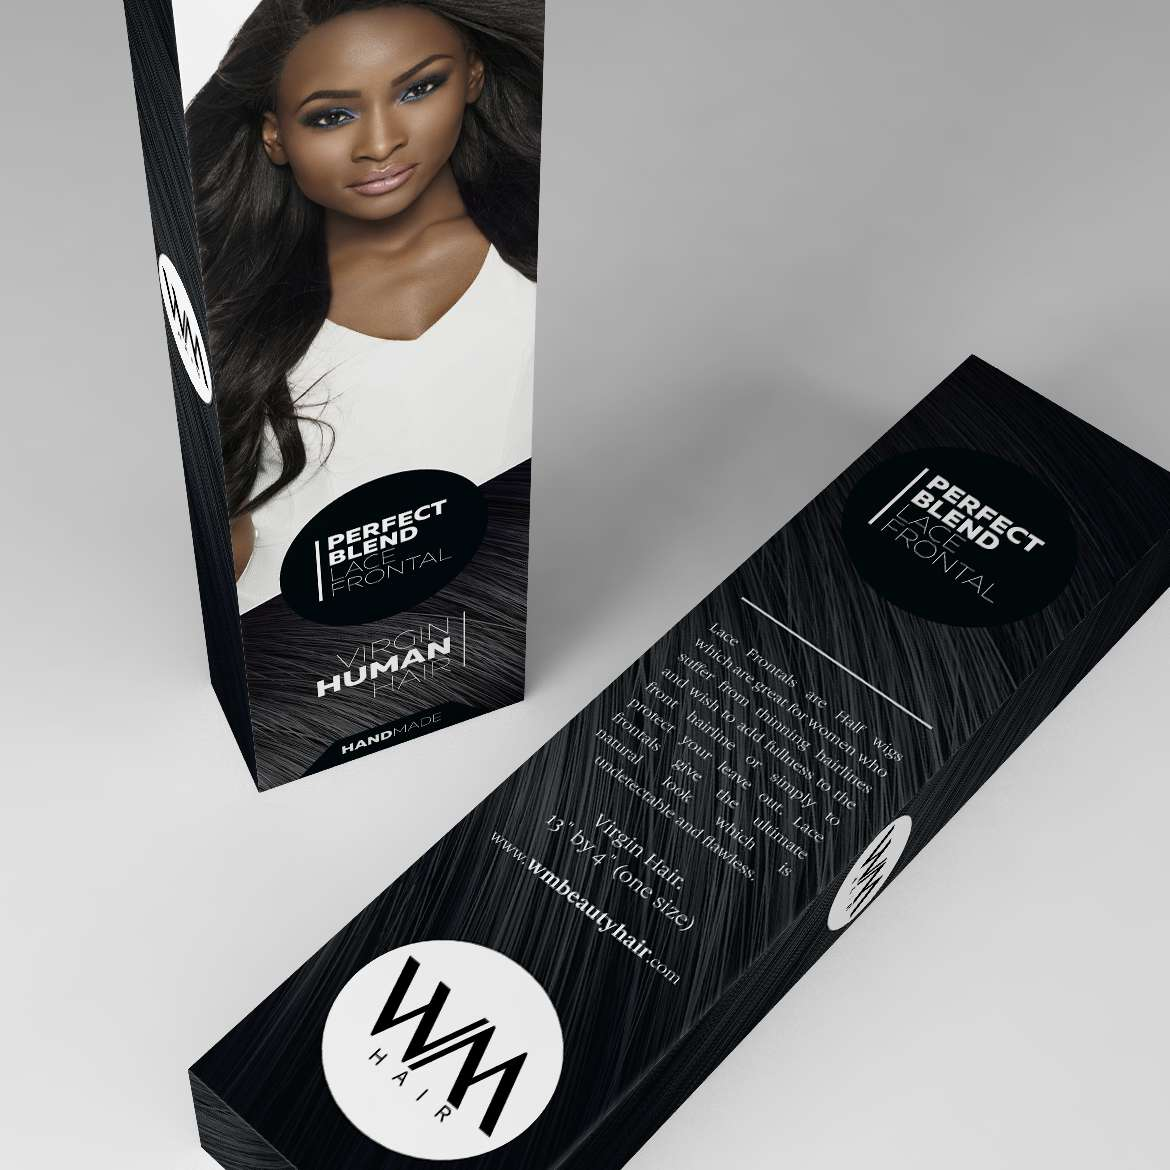 lace-frontal-whitney-marie-virgin-human-hair-extensions-packaging-design-with-reverse-zoomed-out